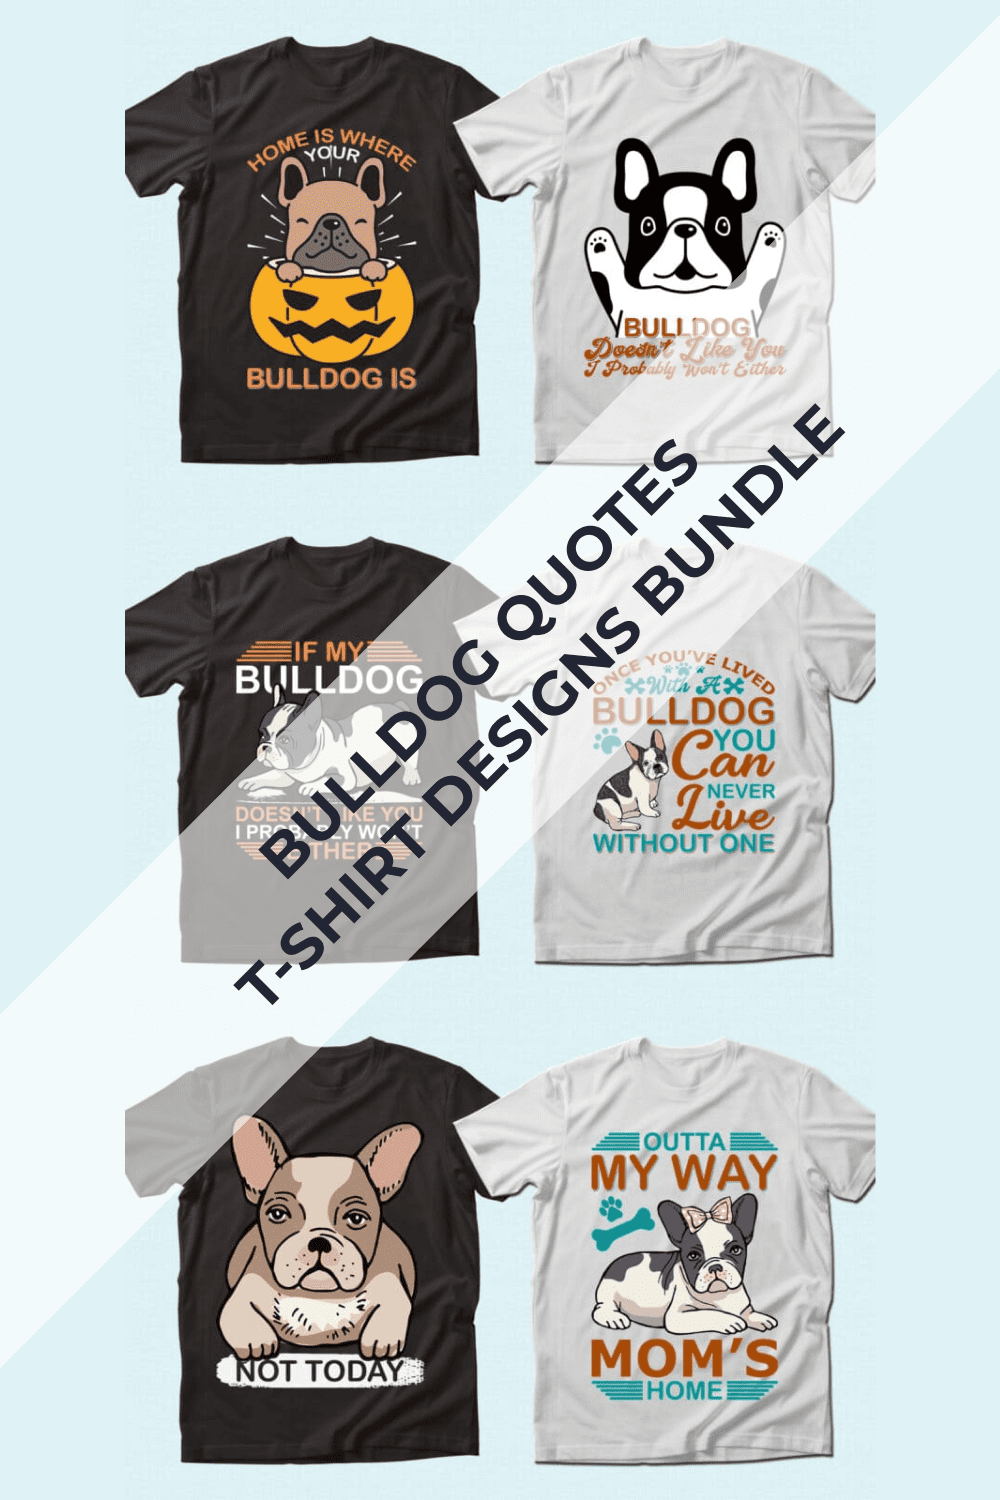 Black and white T-shirts with bulldogs with different moods.